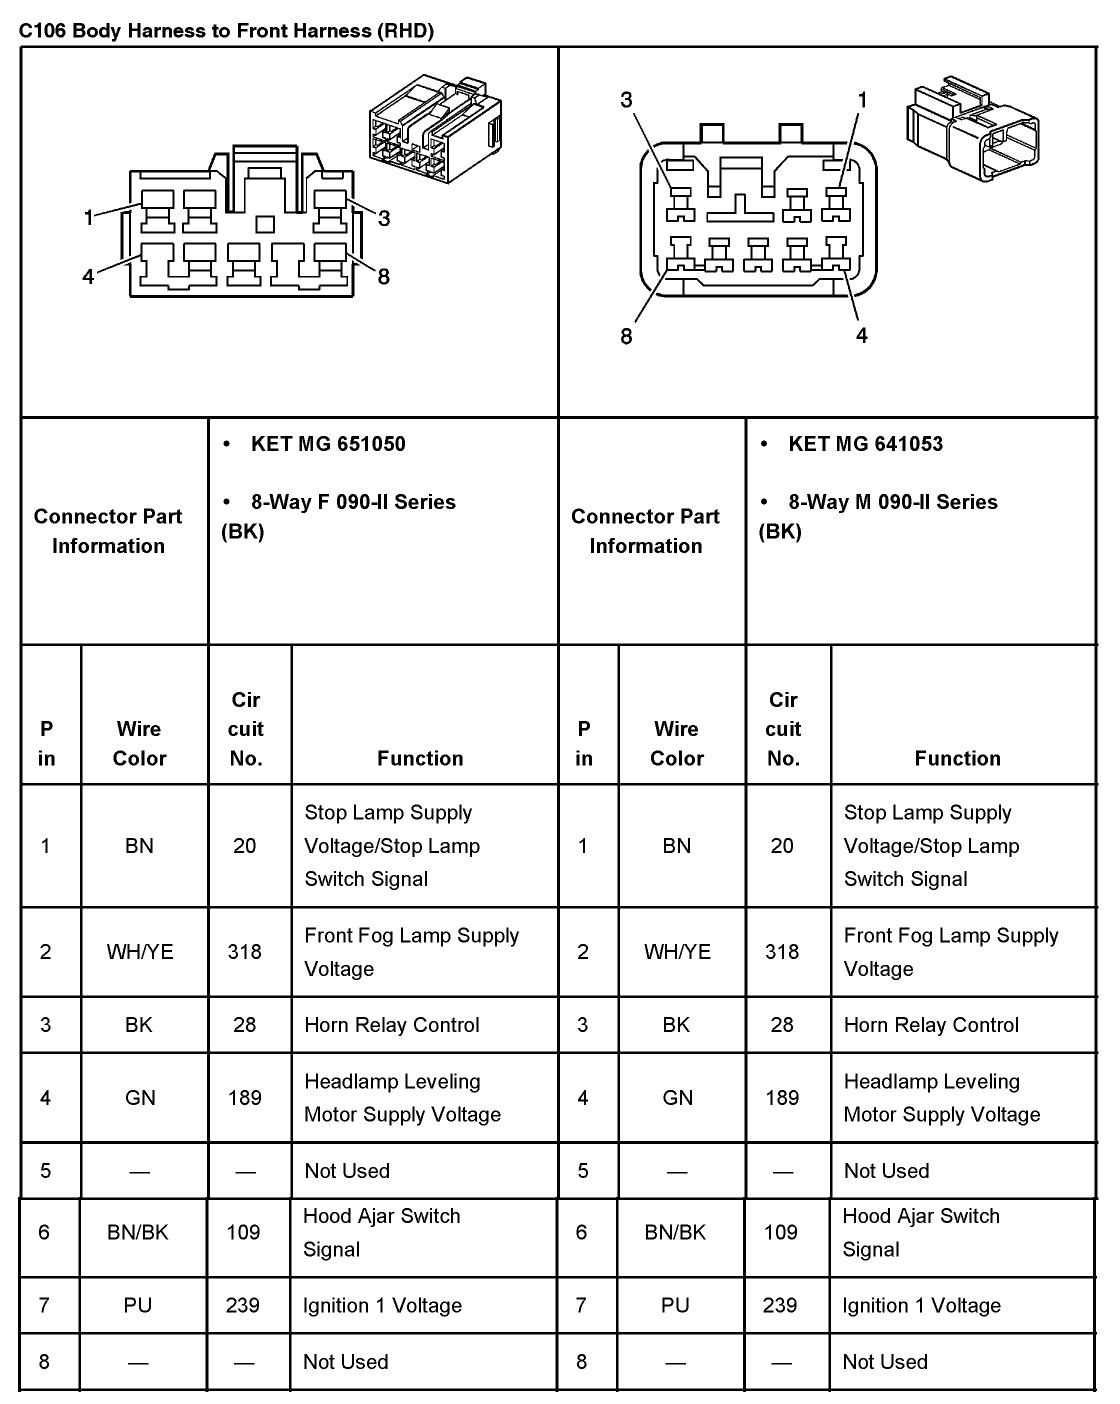 hight resolution of 2005 aveo master connector list and diagrams 2005 chevy aveo ignition wiring diagram 2005 chevy aveo